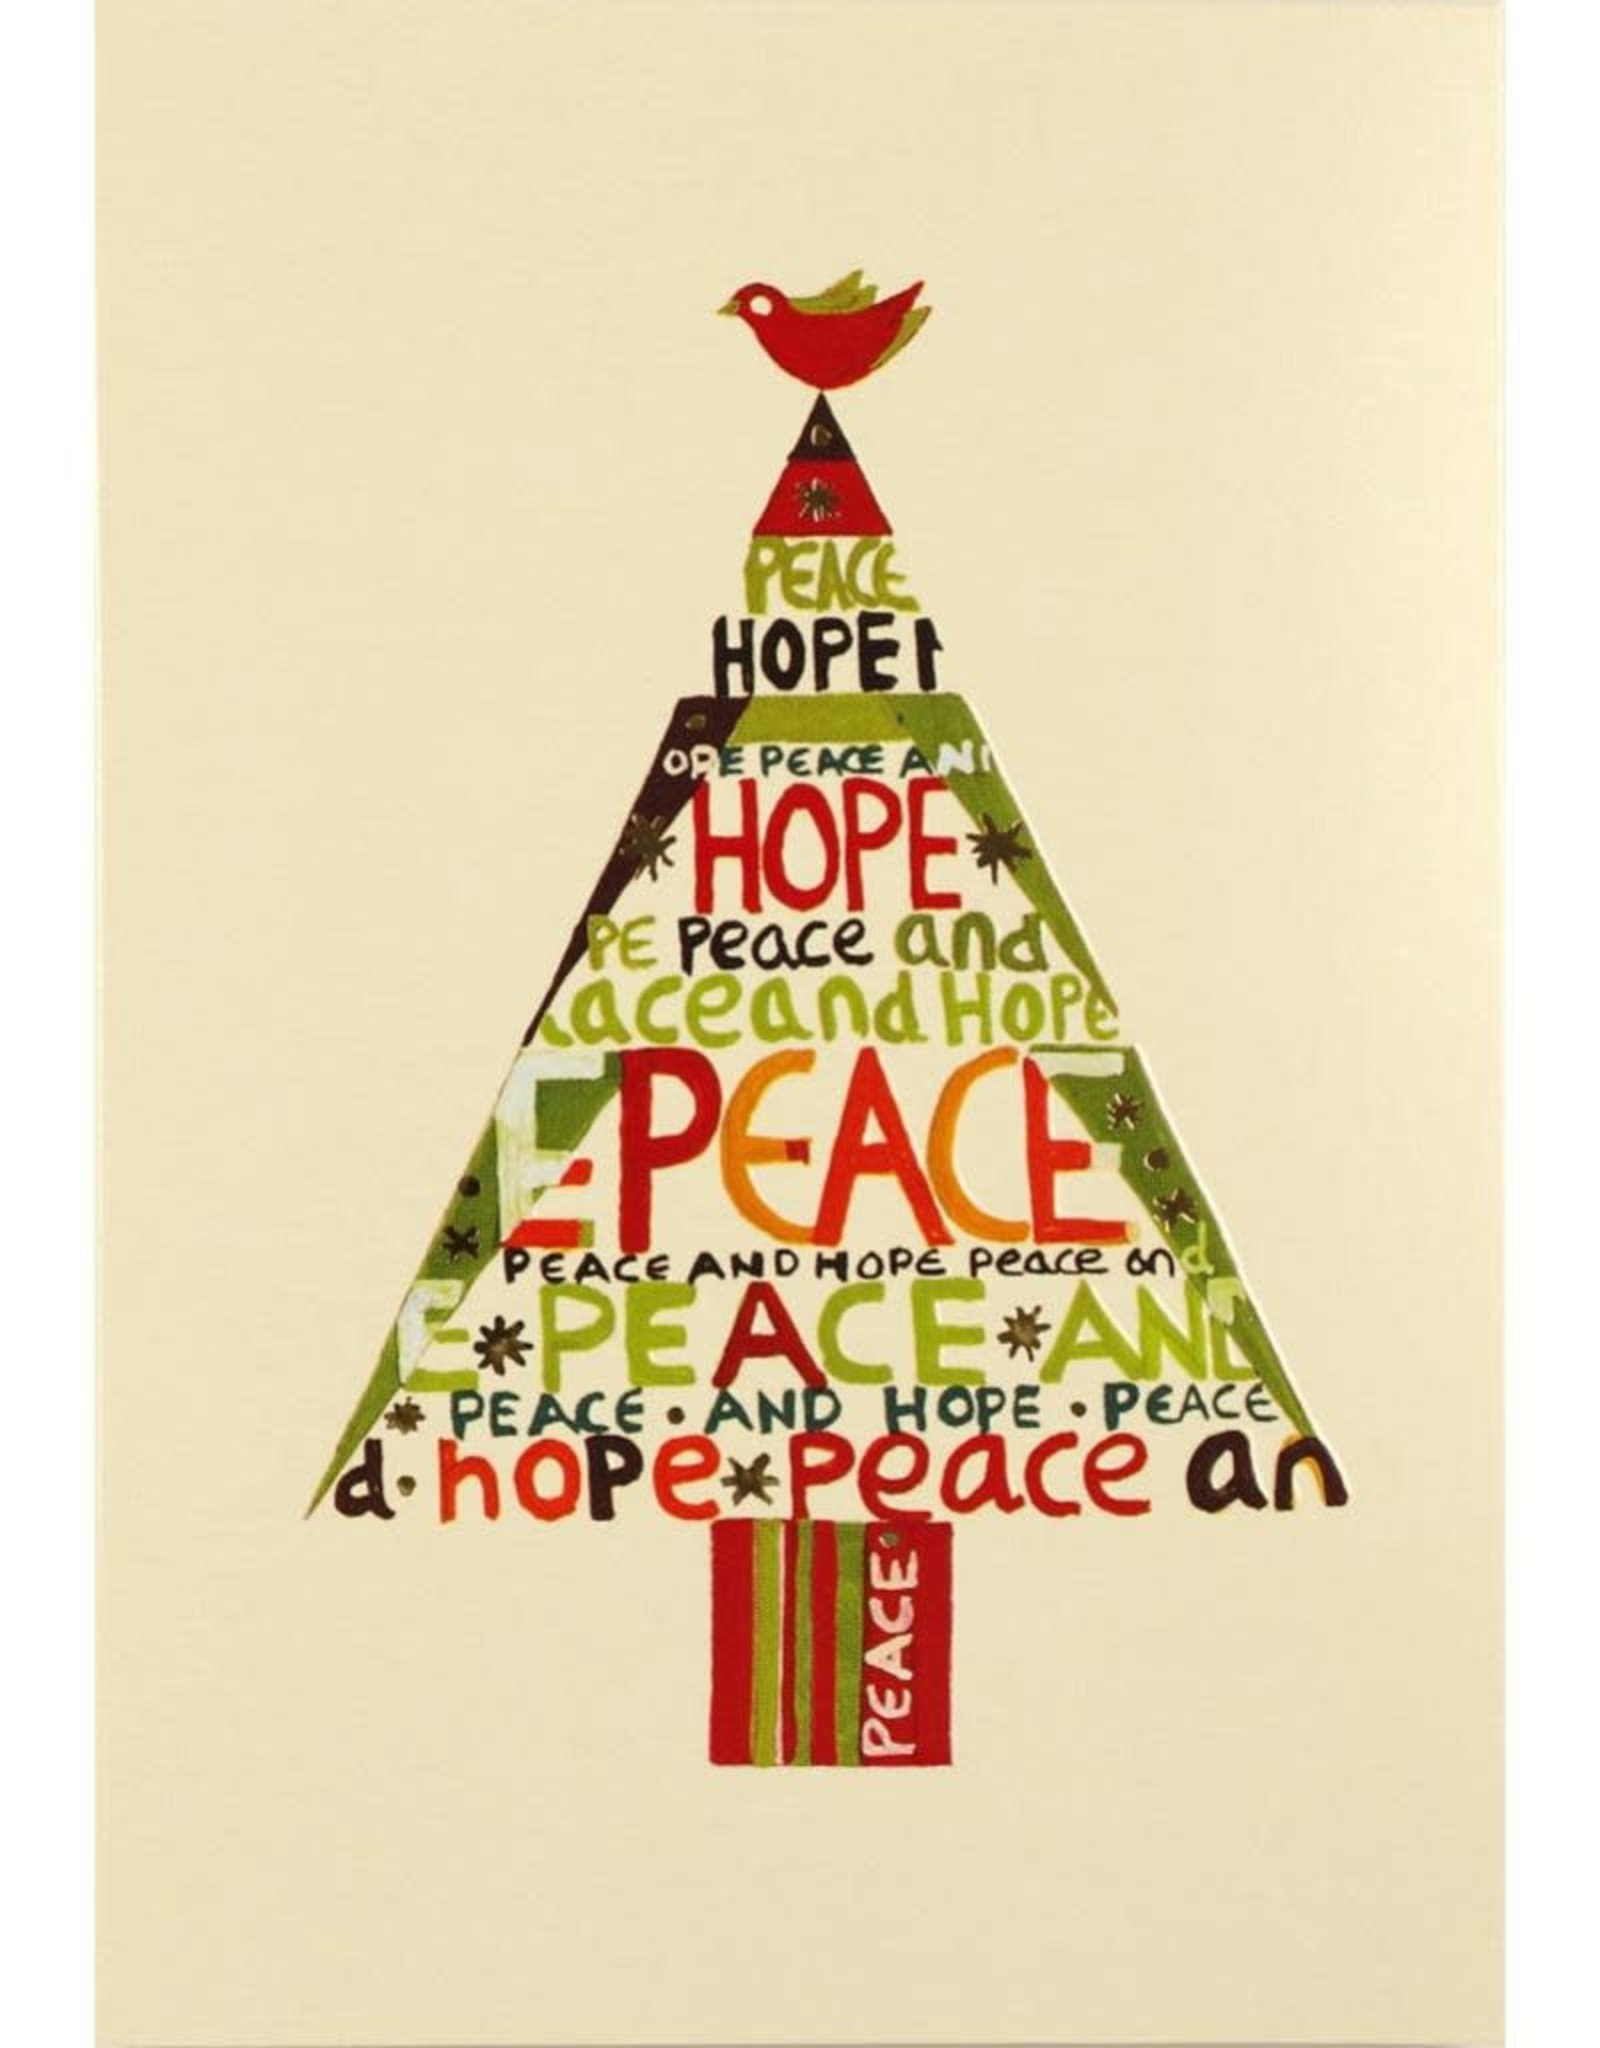 Peter Pauper Peace Hope Tree Boxed Holiday Cards